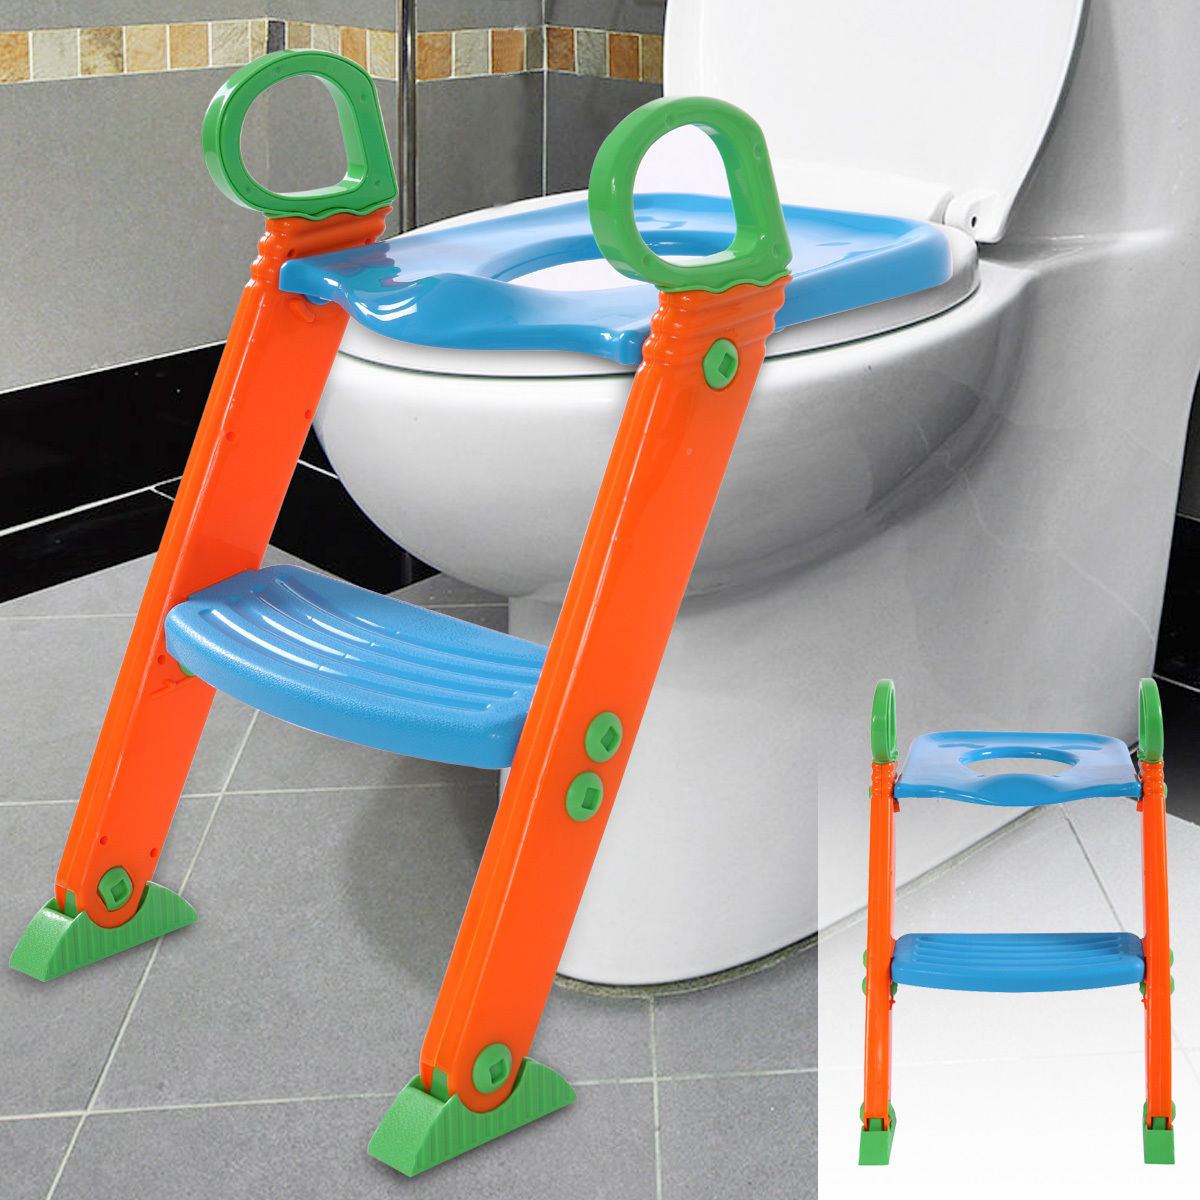 Lazymoon Toilet Trainer Seat Kids Toilet Chair Toddler With Ladder Step Up Training Stool by Lazymoon